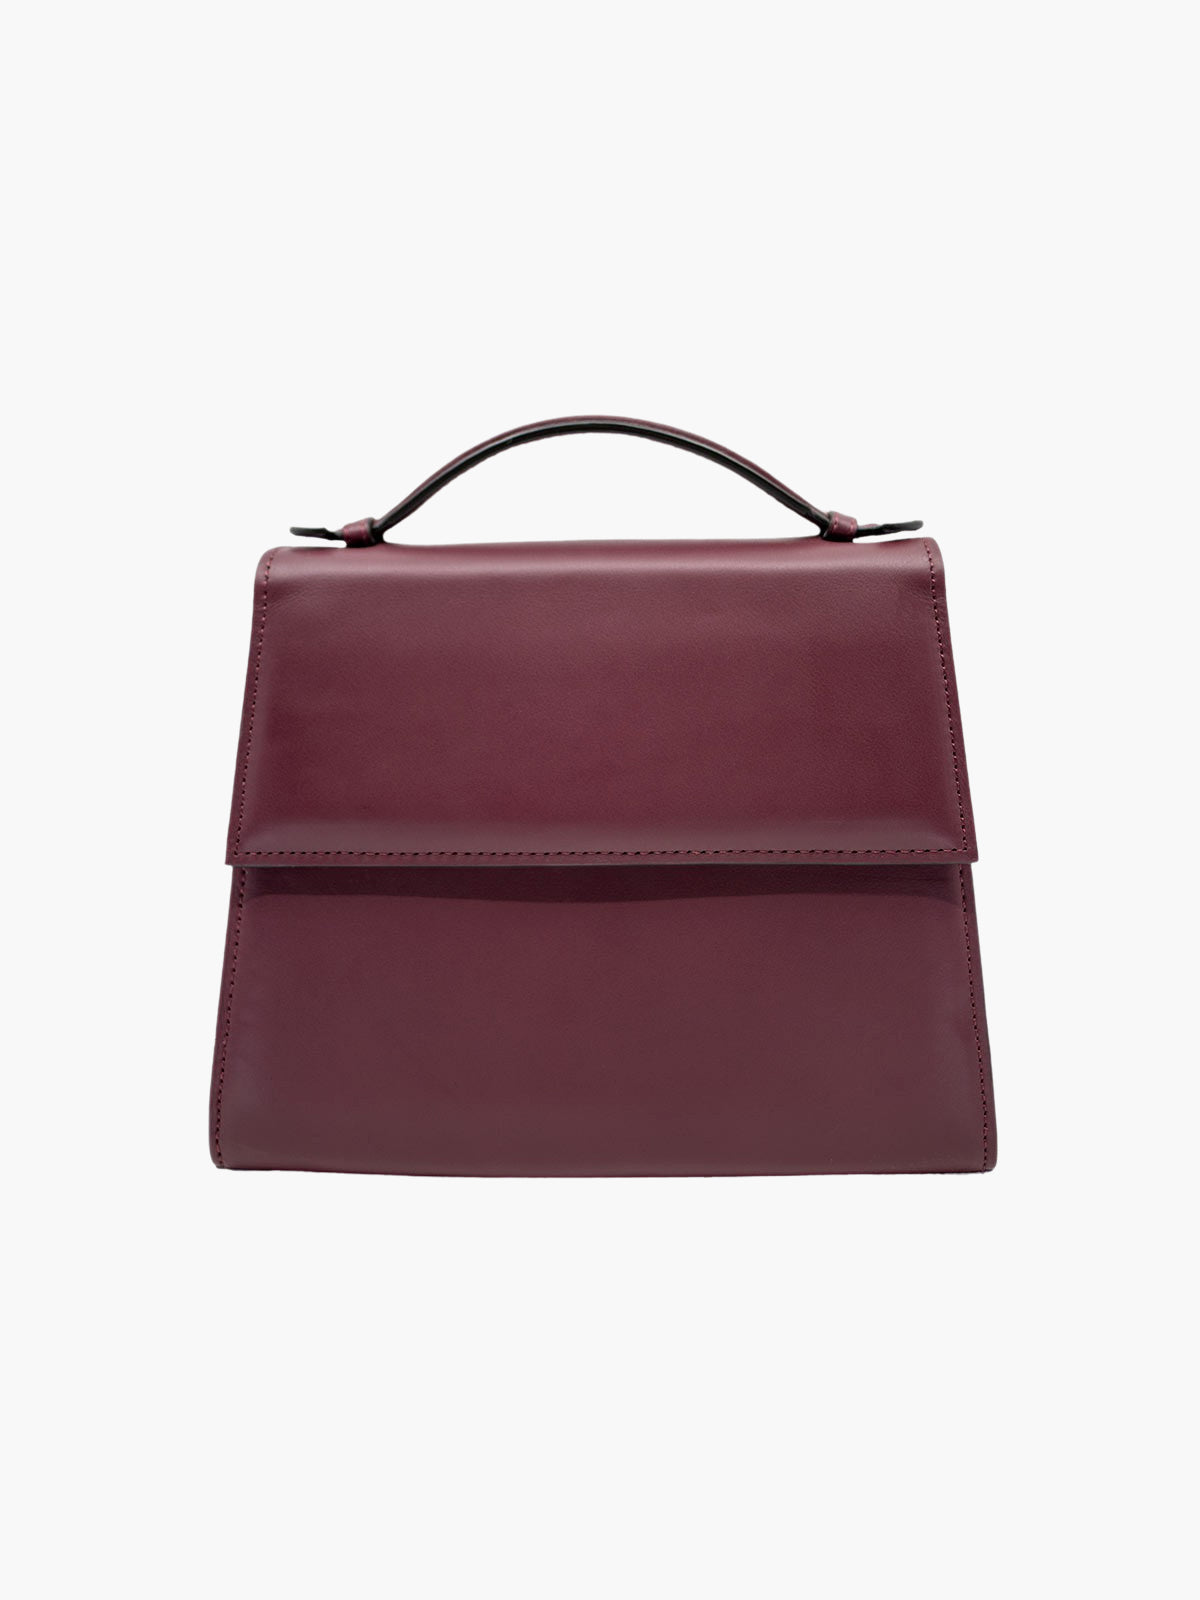 Medium Top Handle Bag | Burgundy